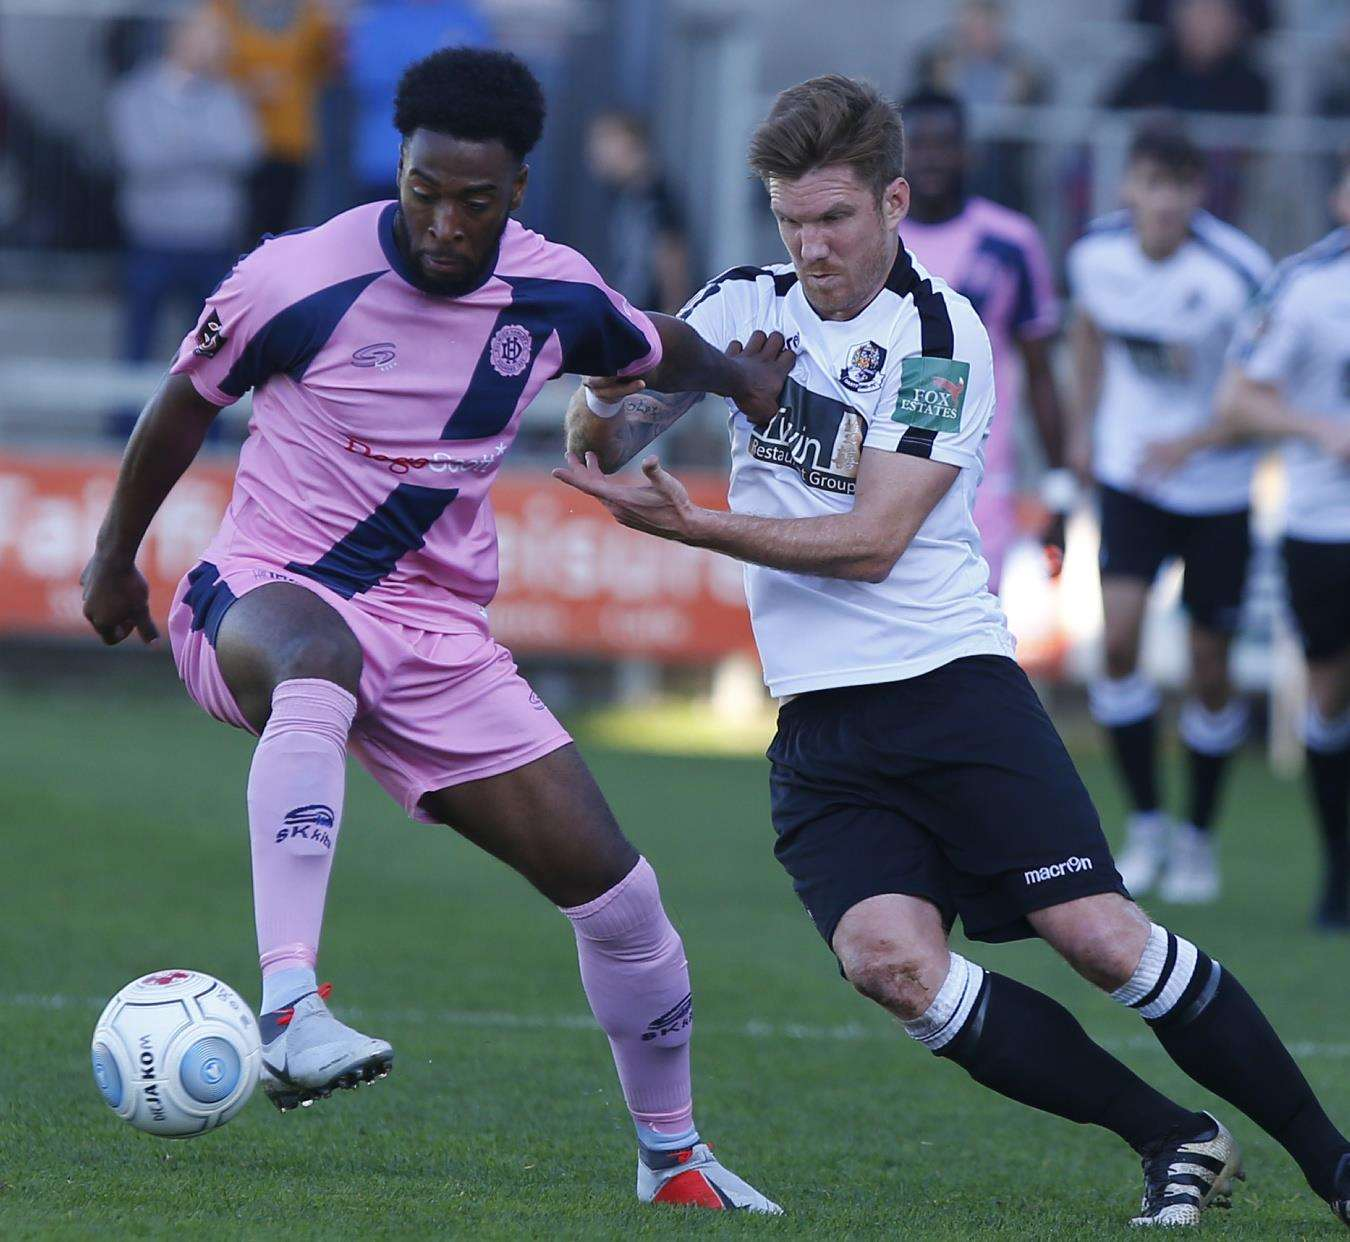 Dartford's Elliot Bradbrook has scored five goals so far this season Picture: Andy Jones